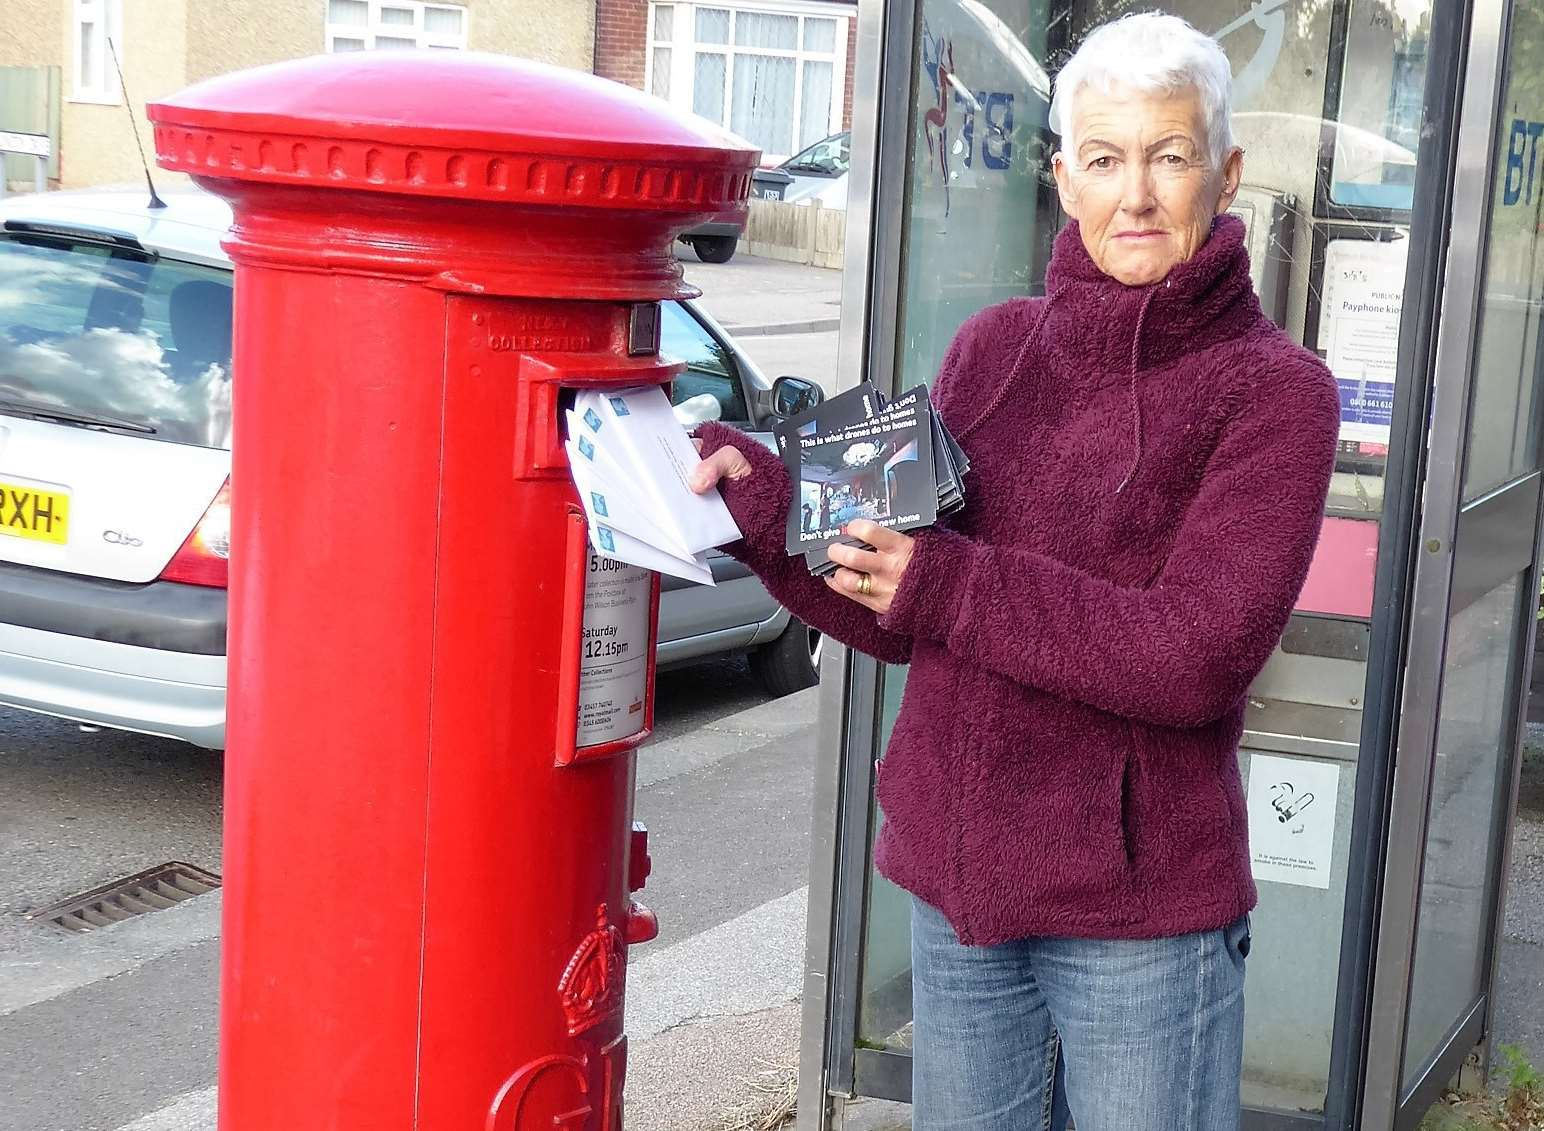 Ruth Simson posting the postcards to Discovery Park in Sandwich